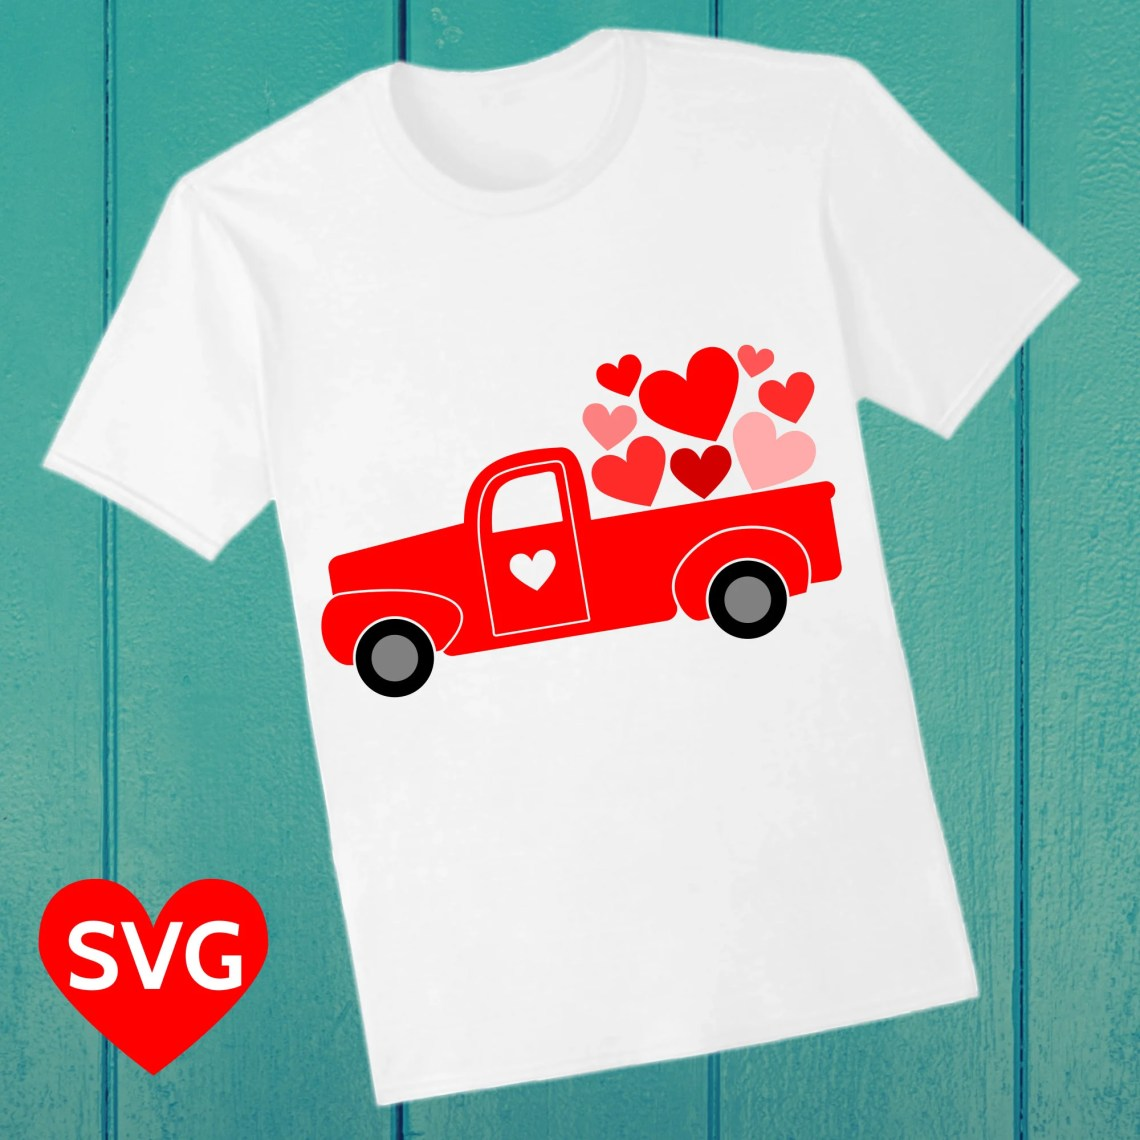 Download Valentine's Day SVG Love Truck carrying a truck load of ...